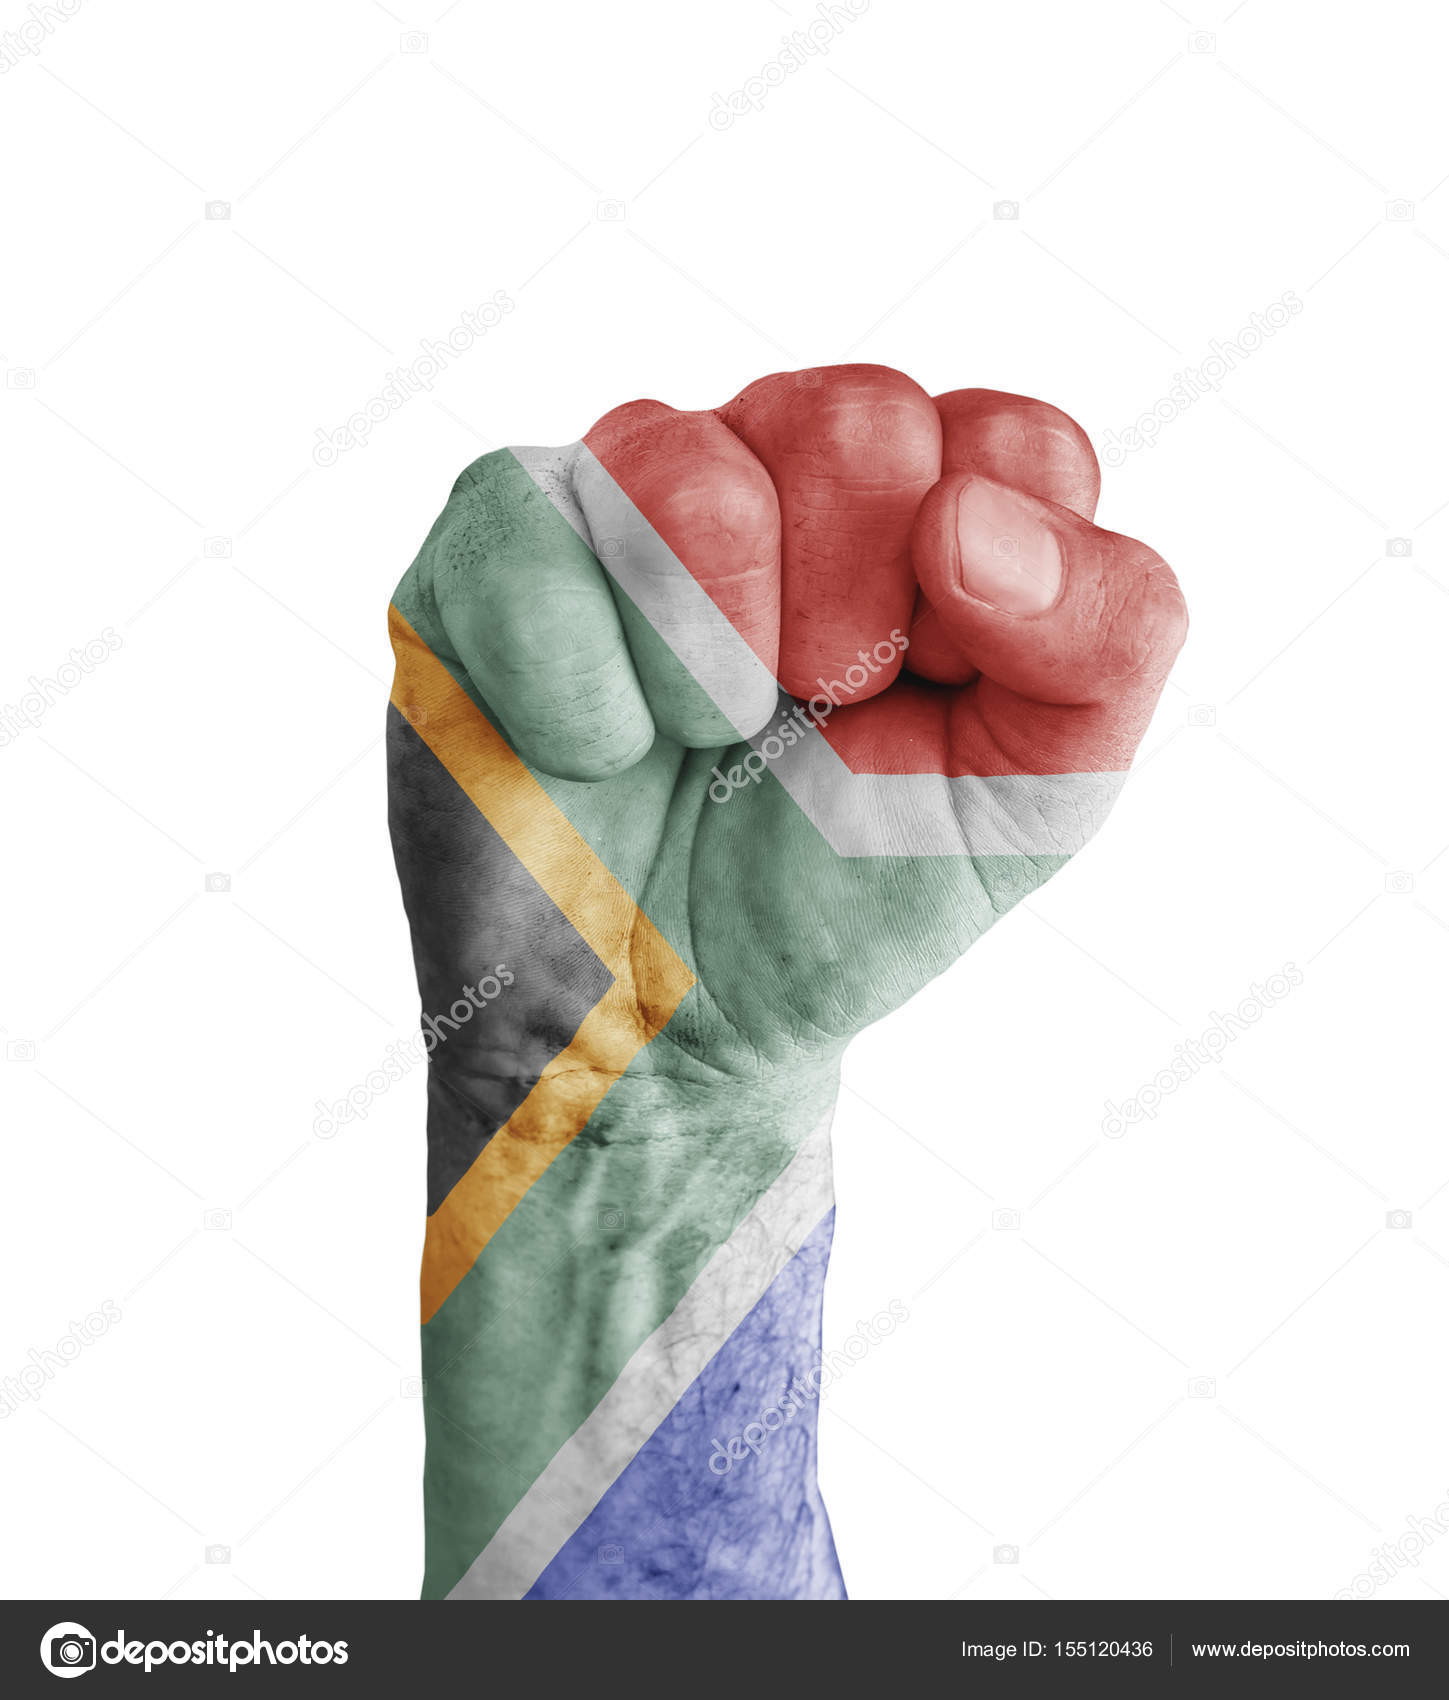 Flag Of South Africa Painted On Human Fist Like Victory Symbol